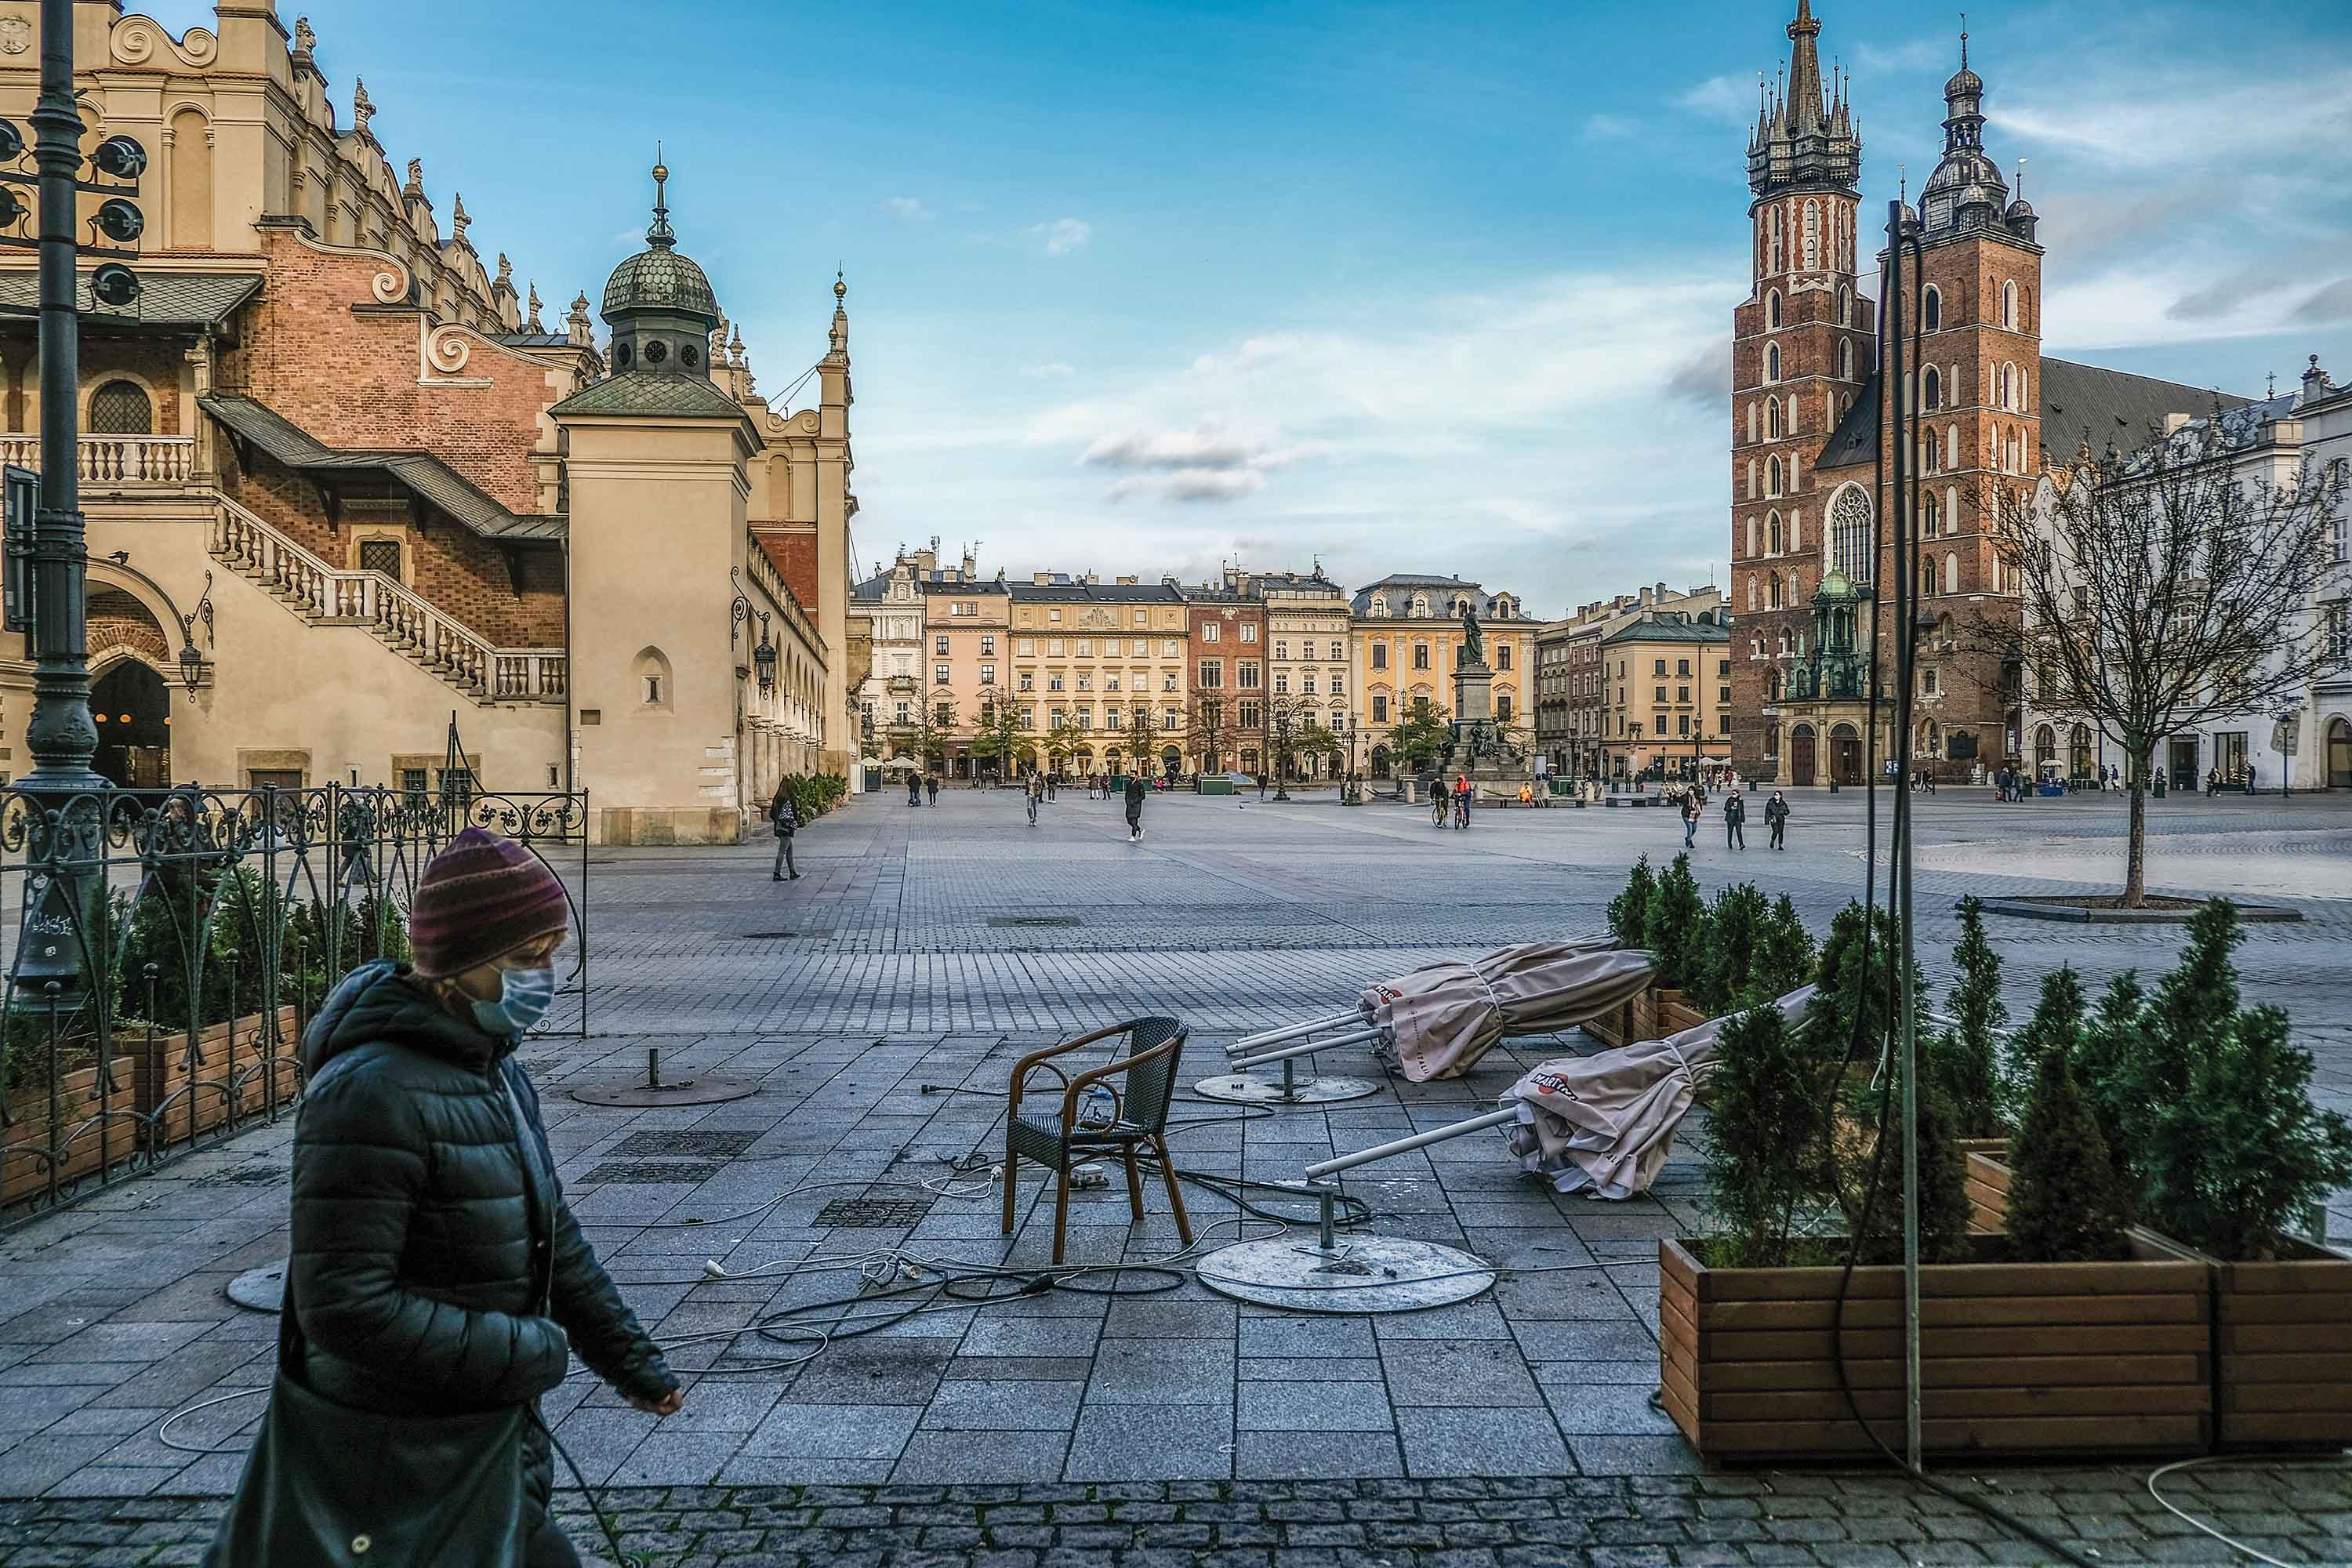 A person walks in Krakow's nearly empty main square, during the Covid-19 crisis in Poland, on November 16.